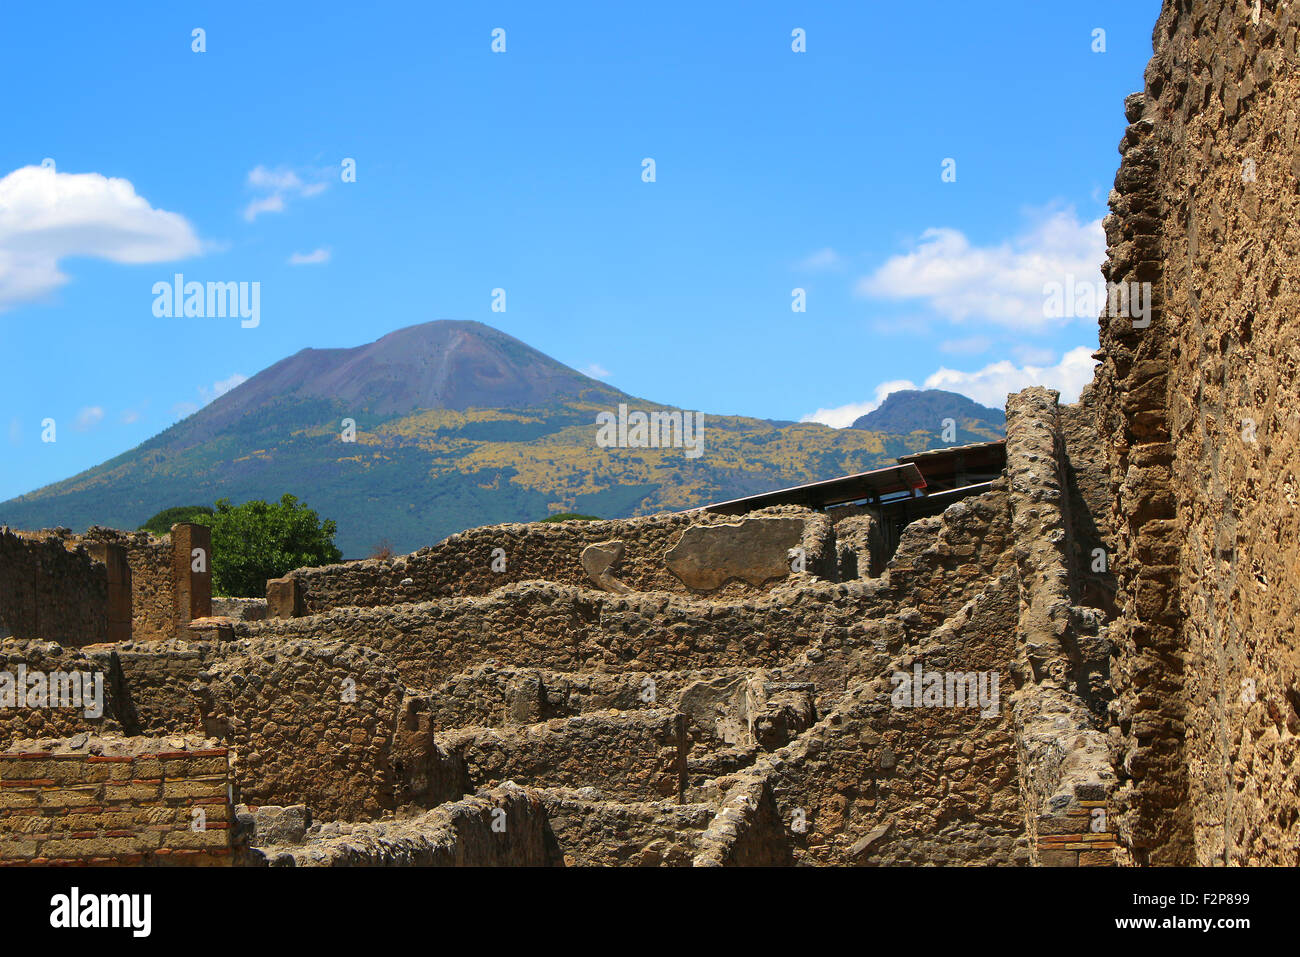 View of ruins in the old city of Pompeii, Italy with Mount Vesuvius in the background - Stock Image